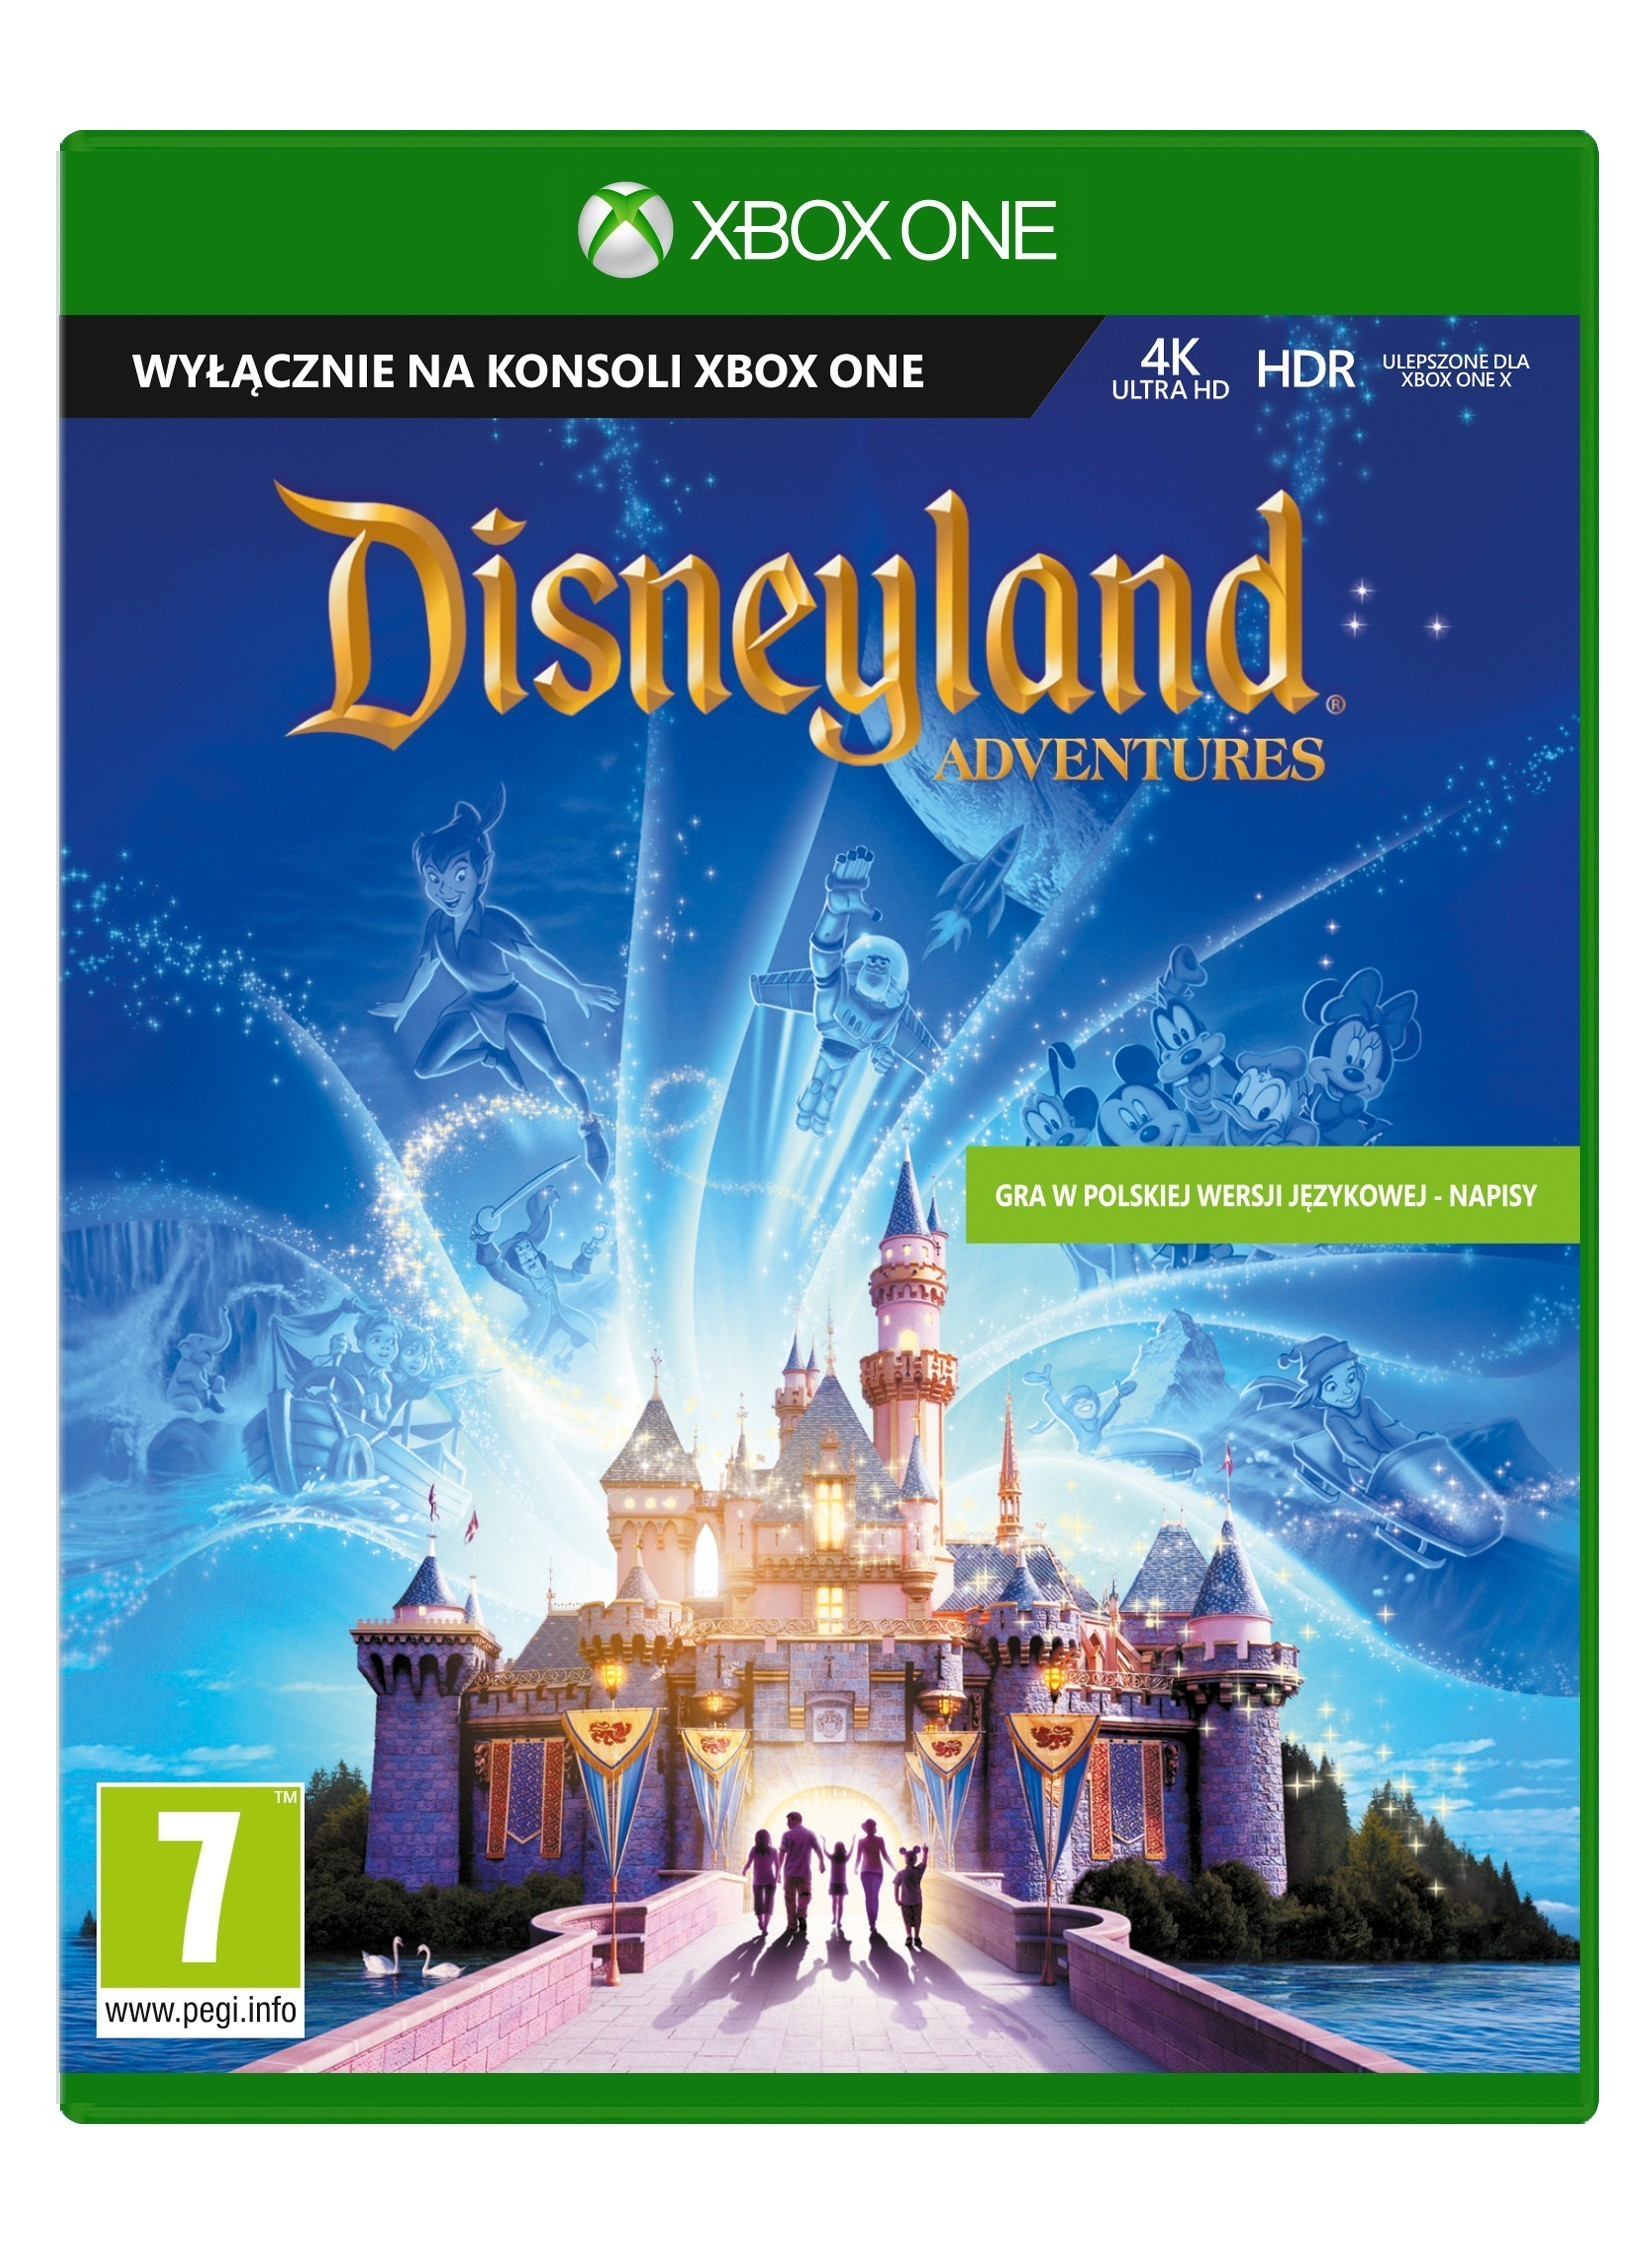 disneyland_adventures_xbox_one_cover.jpg